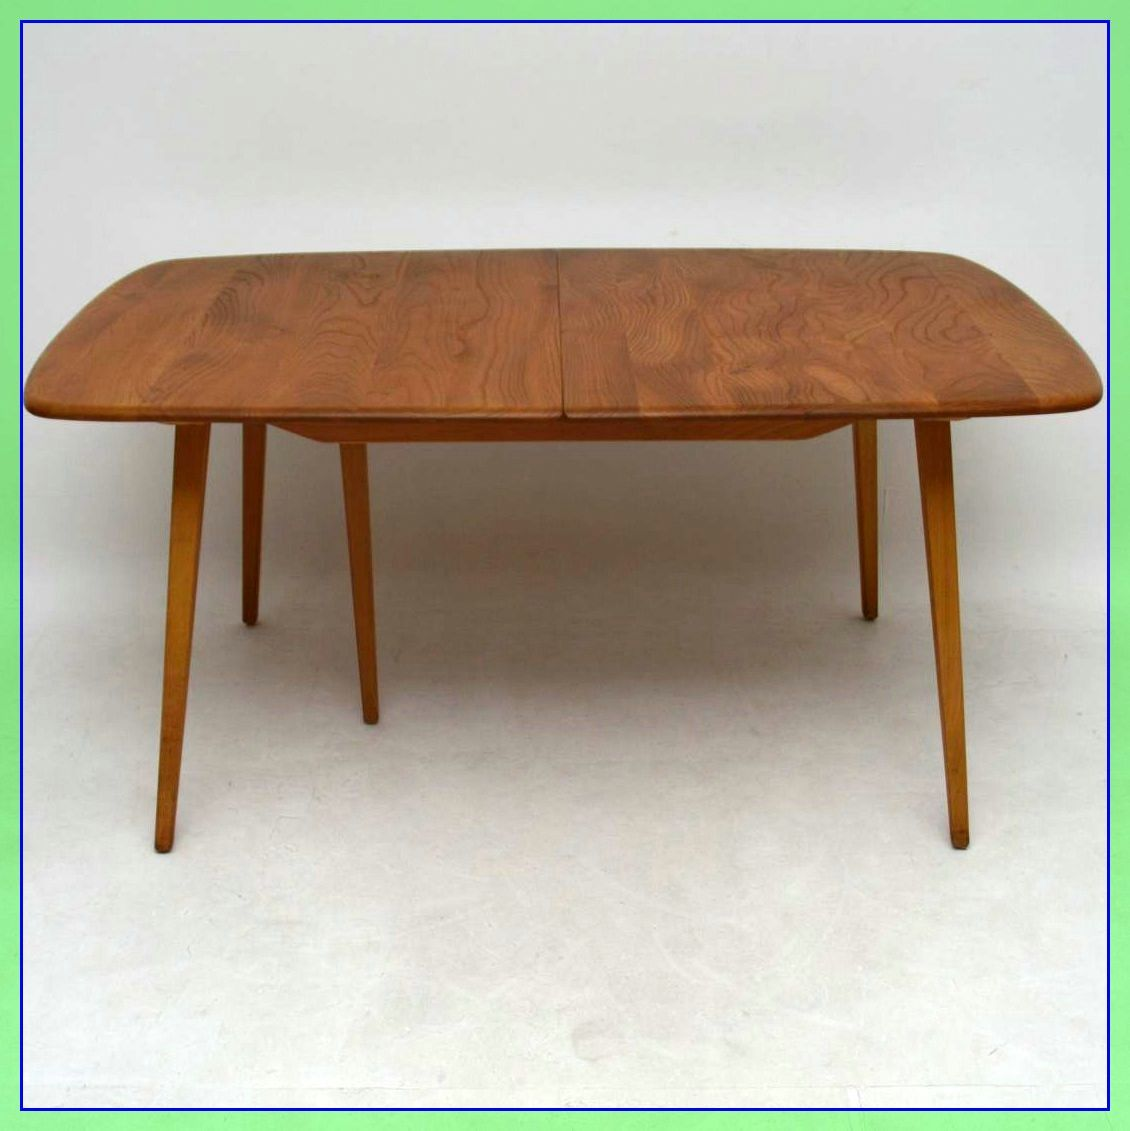 Pin On Dining Room Table With Wicker Chairs